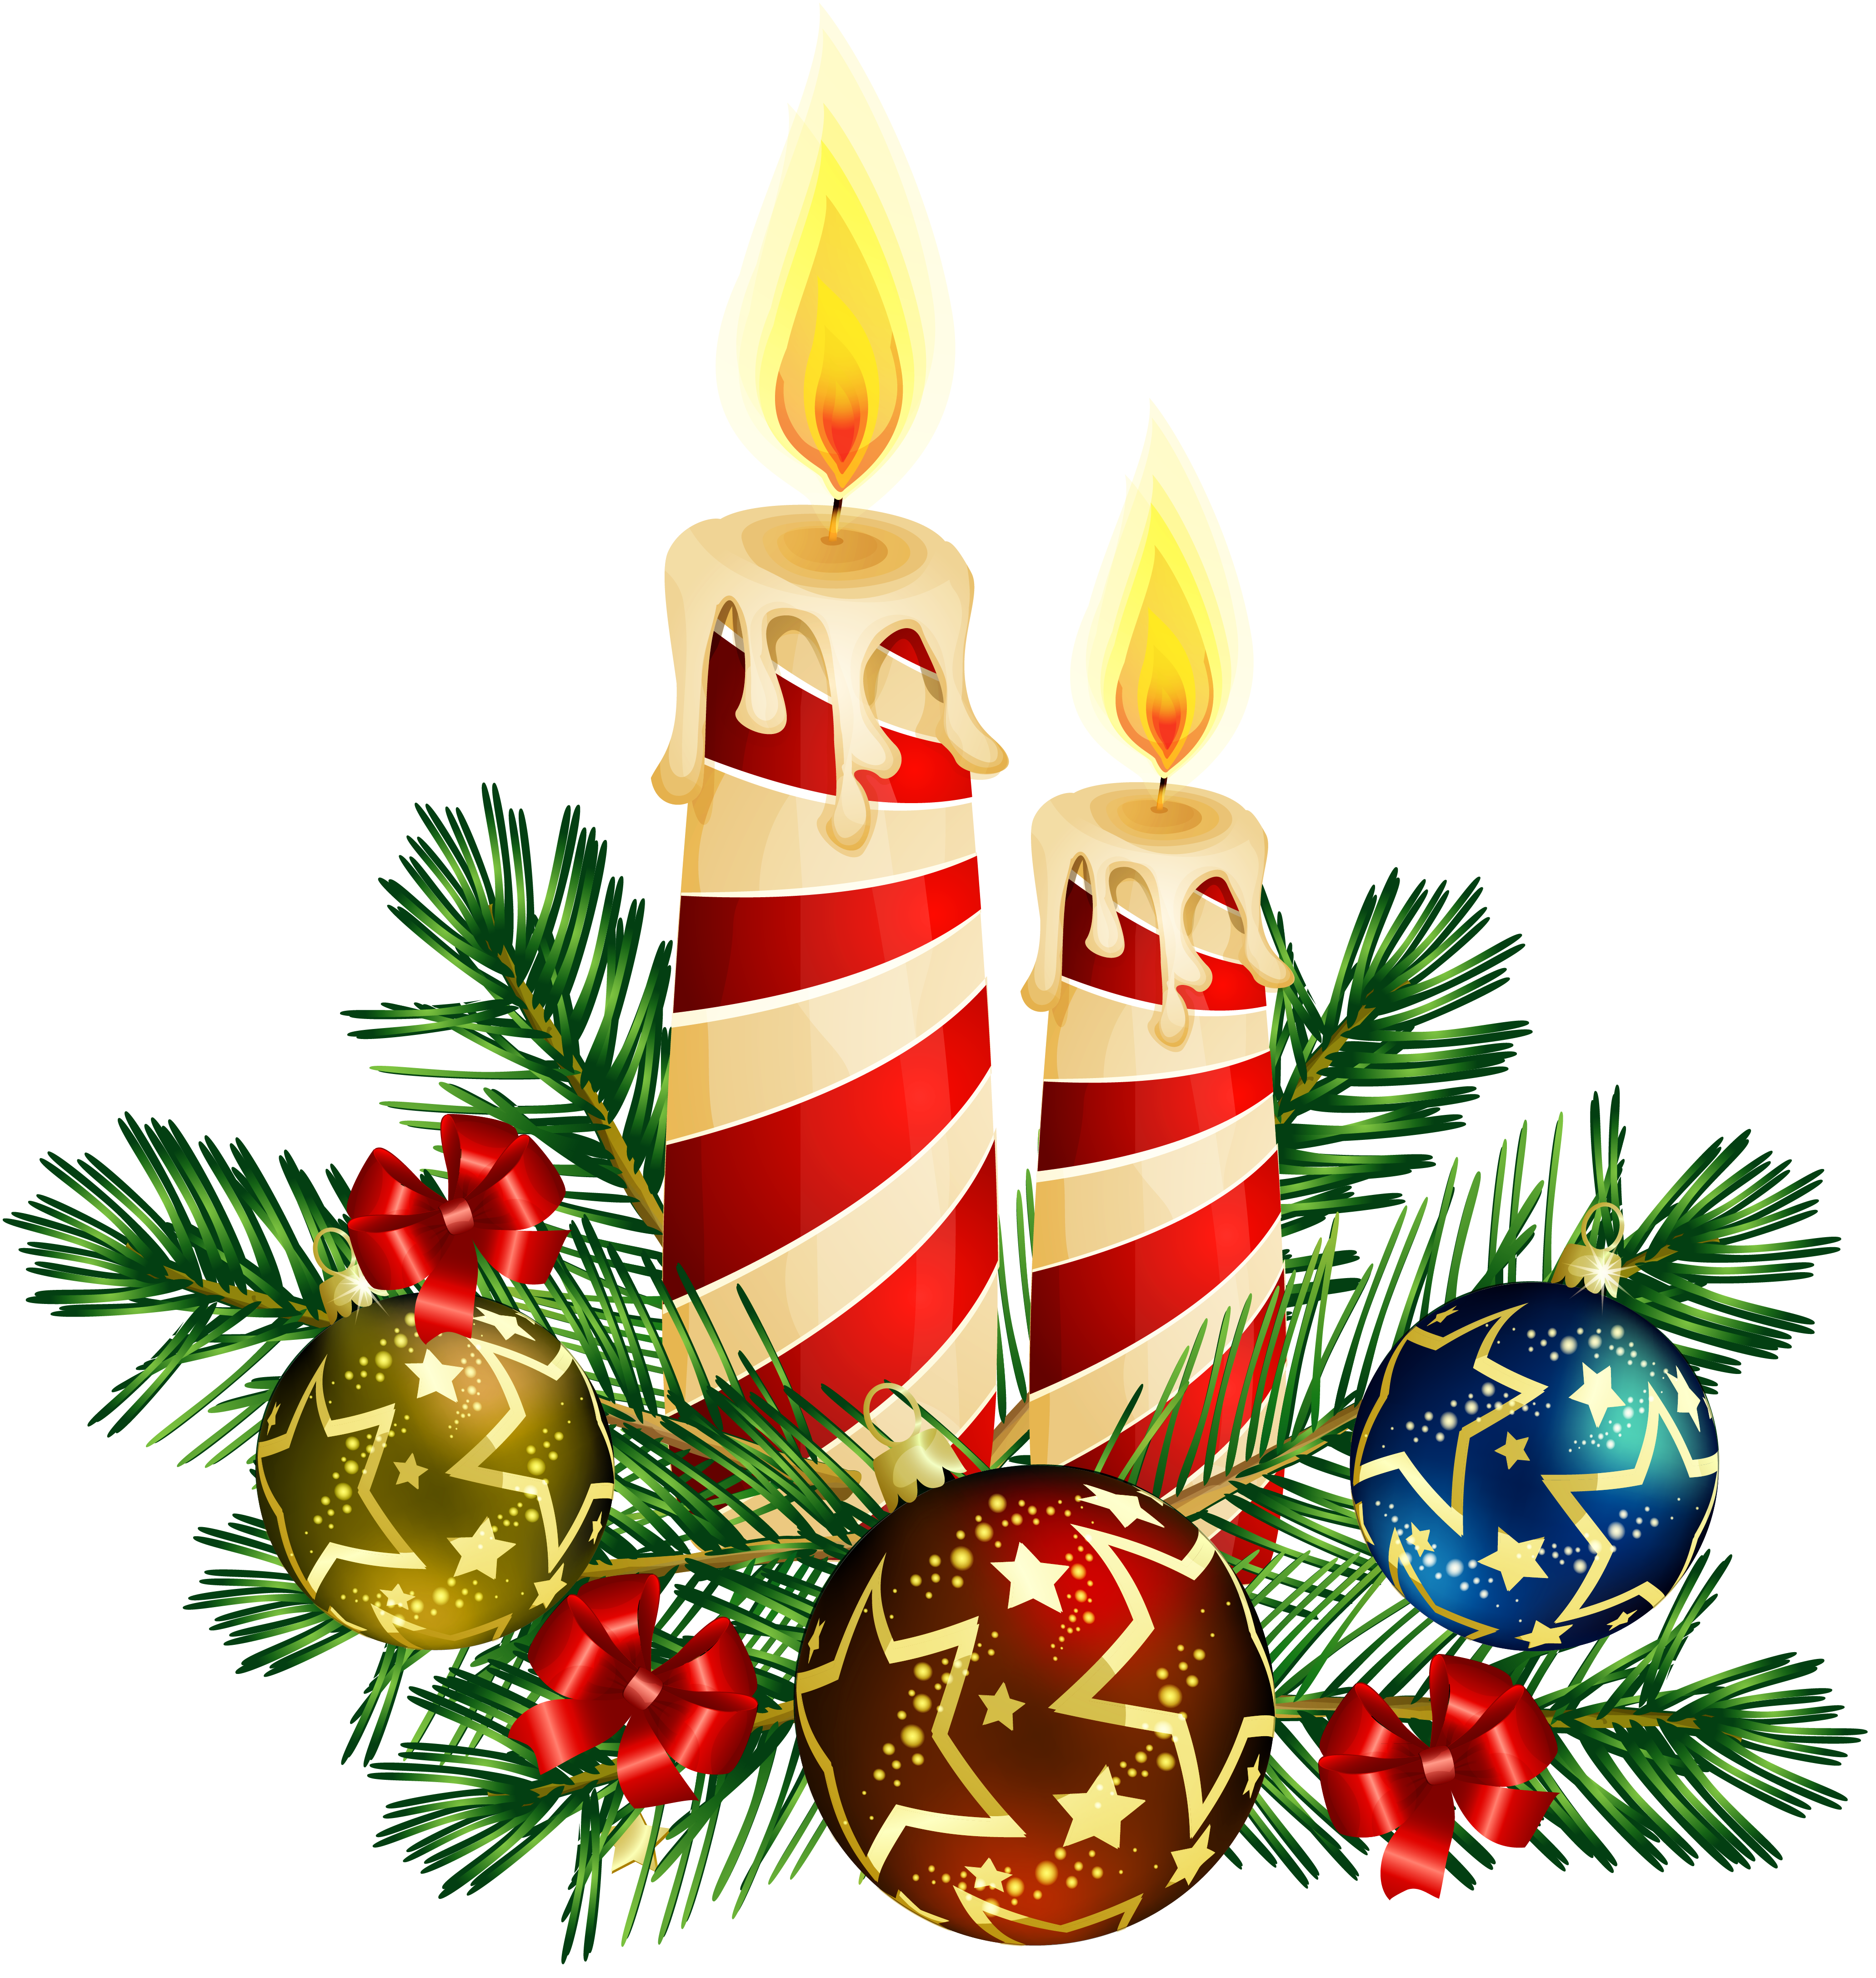 Free christmas candle images. Candles clipart beautiful